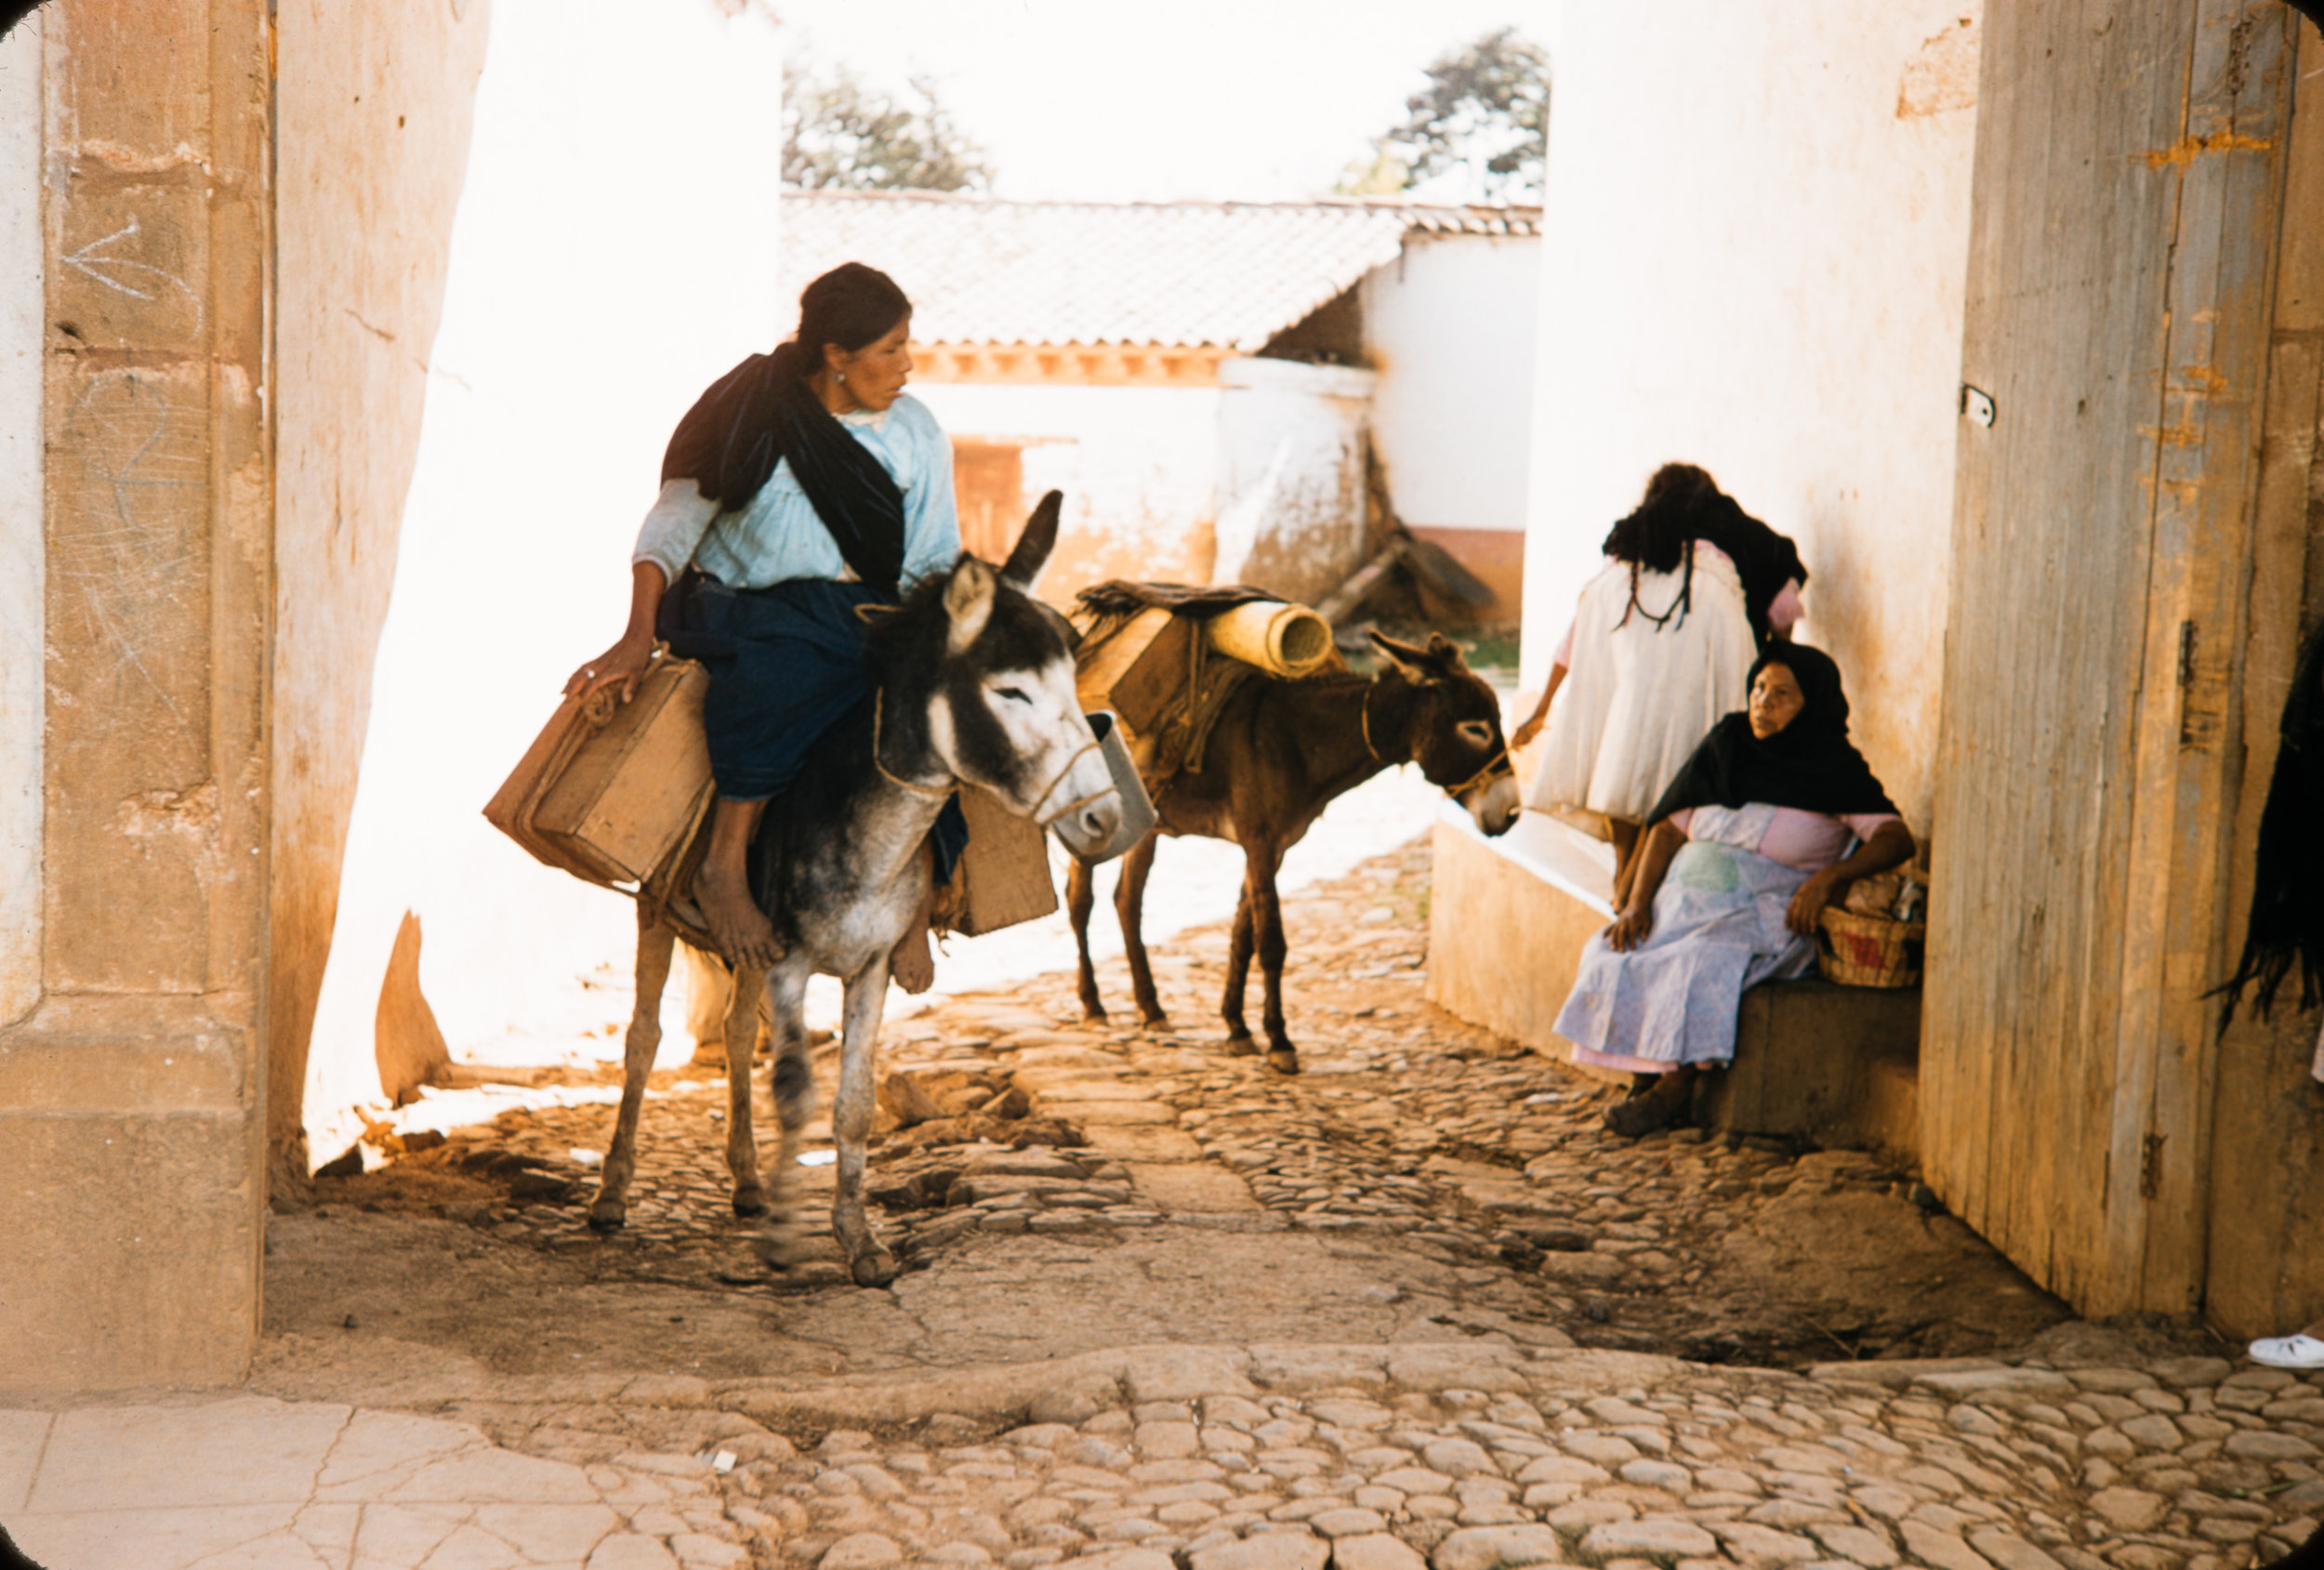 Woman on donkey, Mexico, 1957